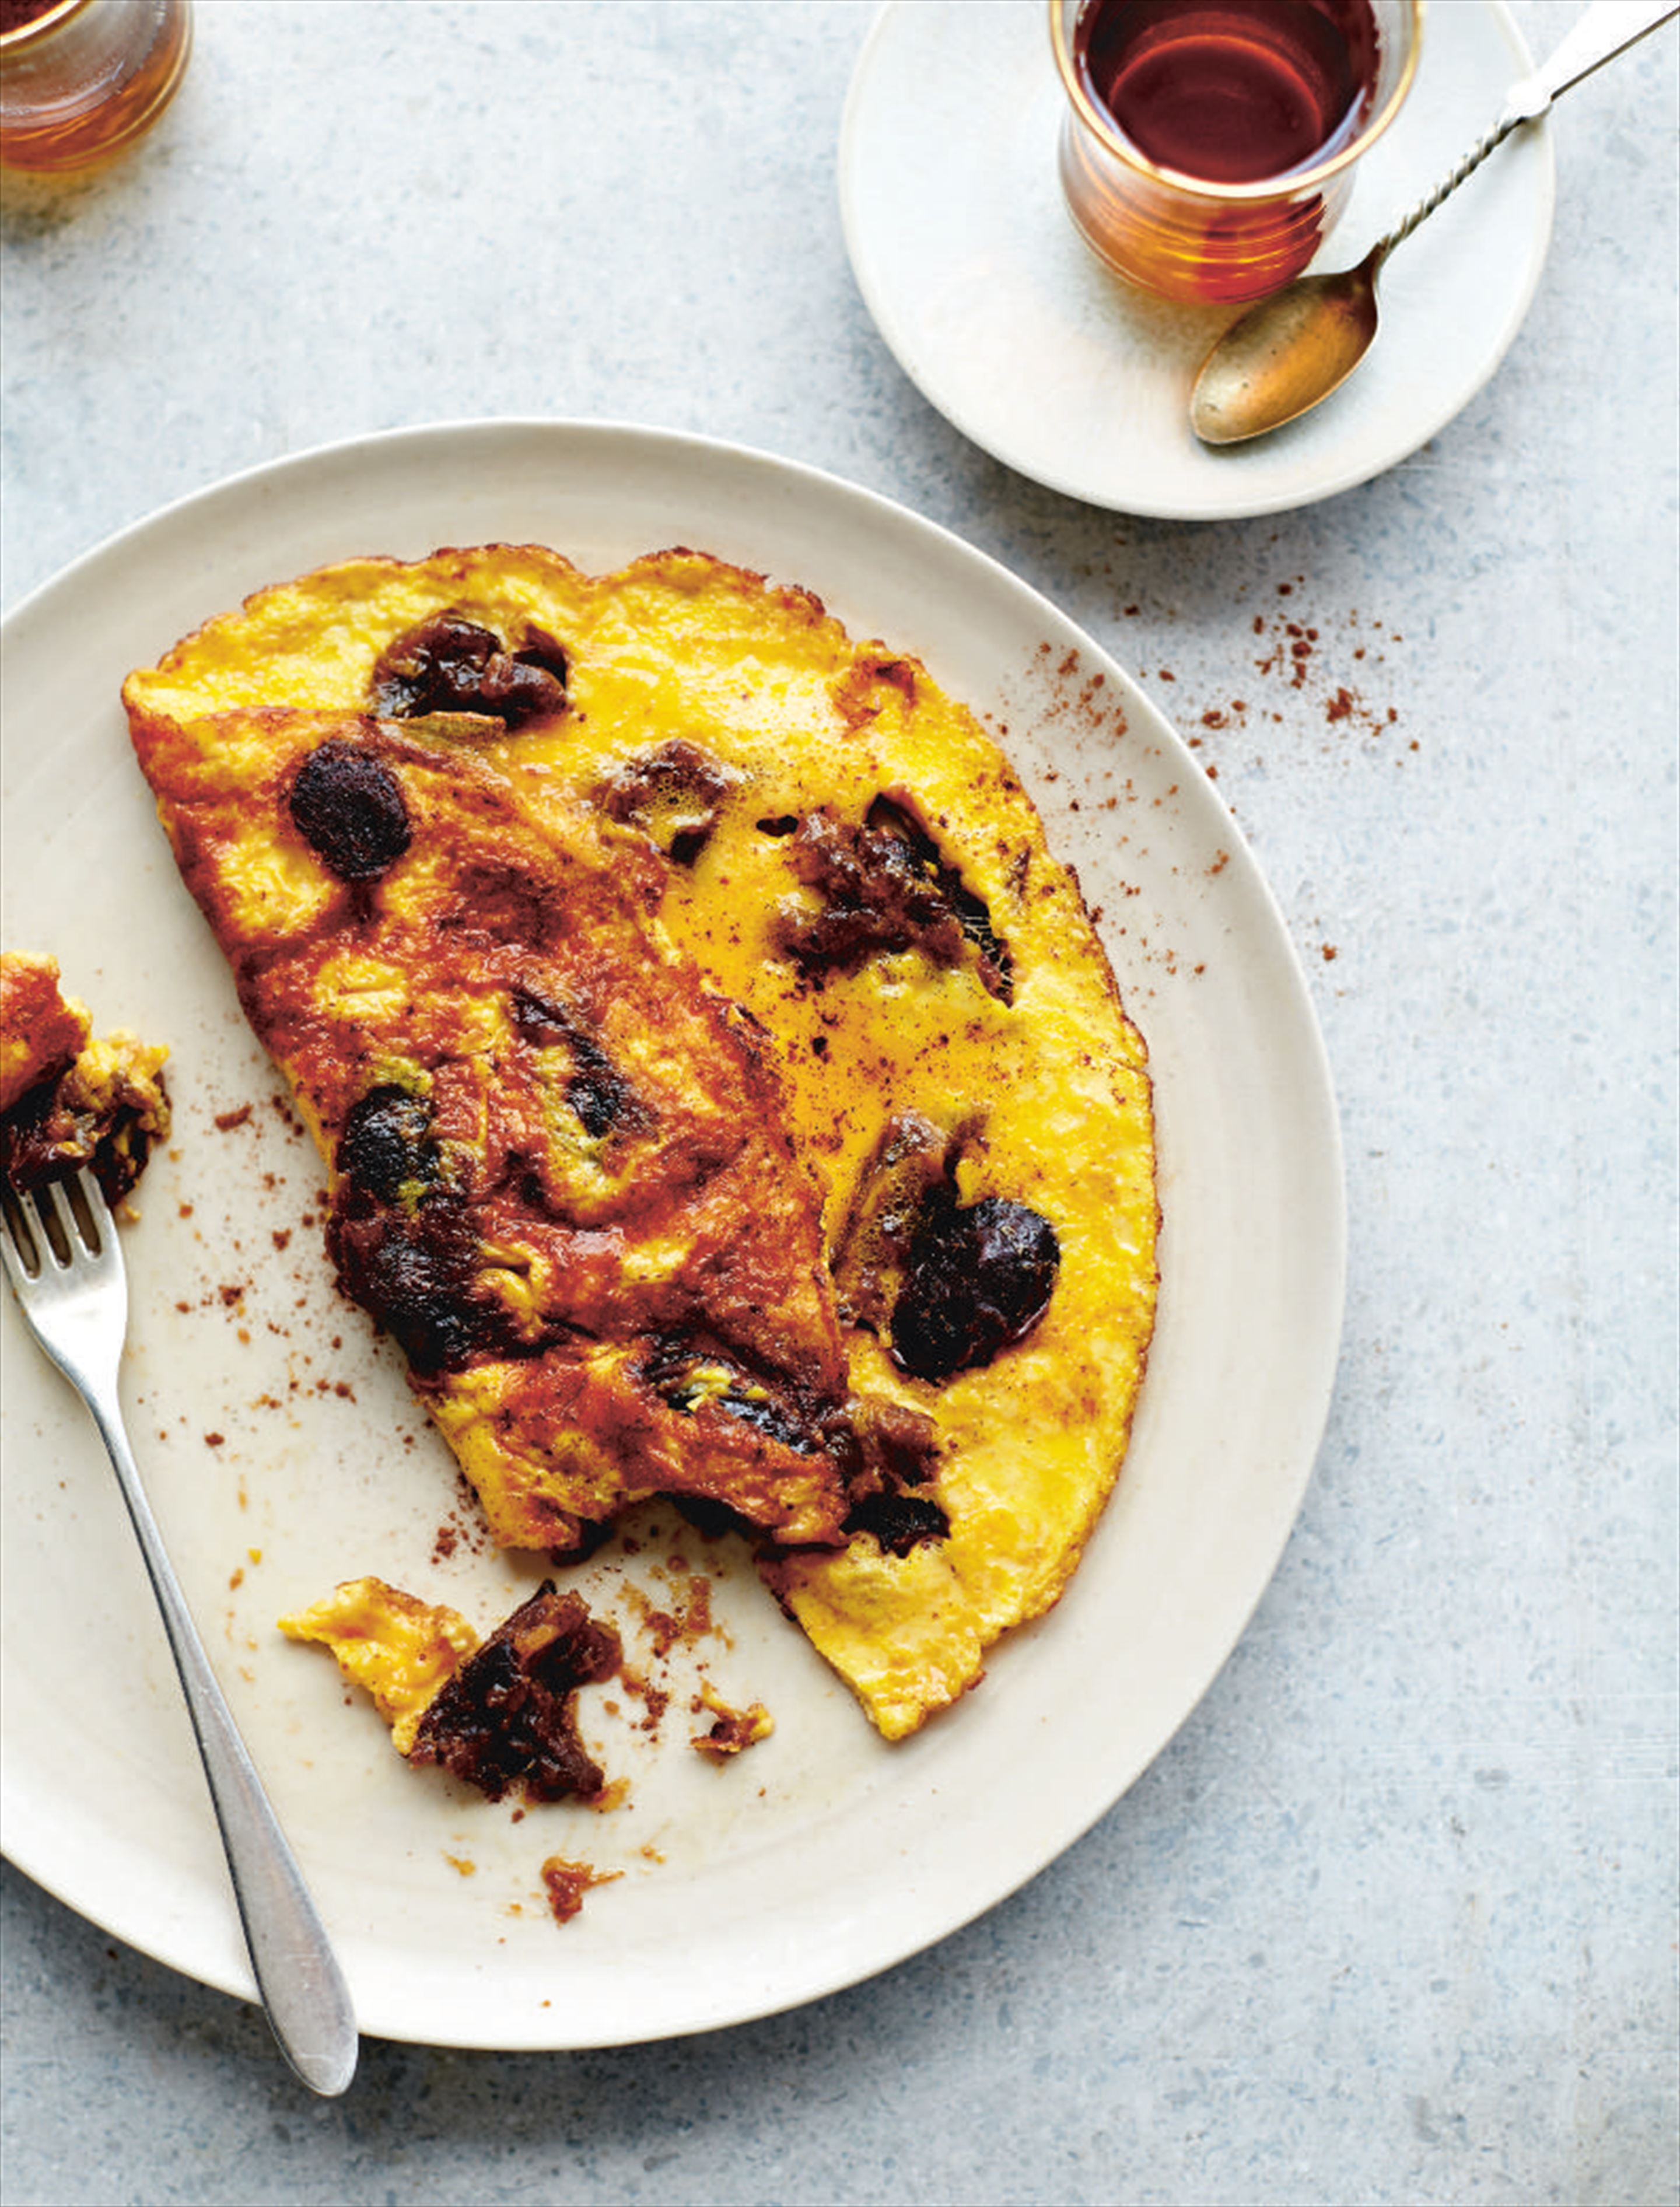 Date and cinnamon omelette